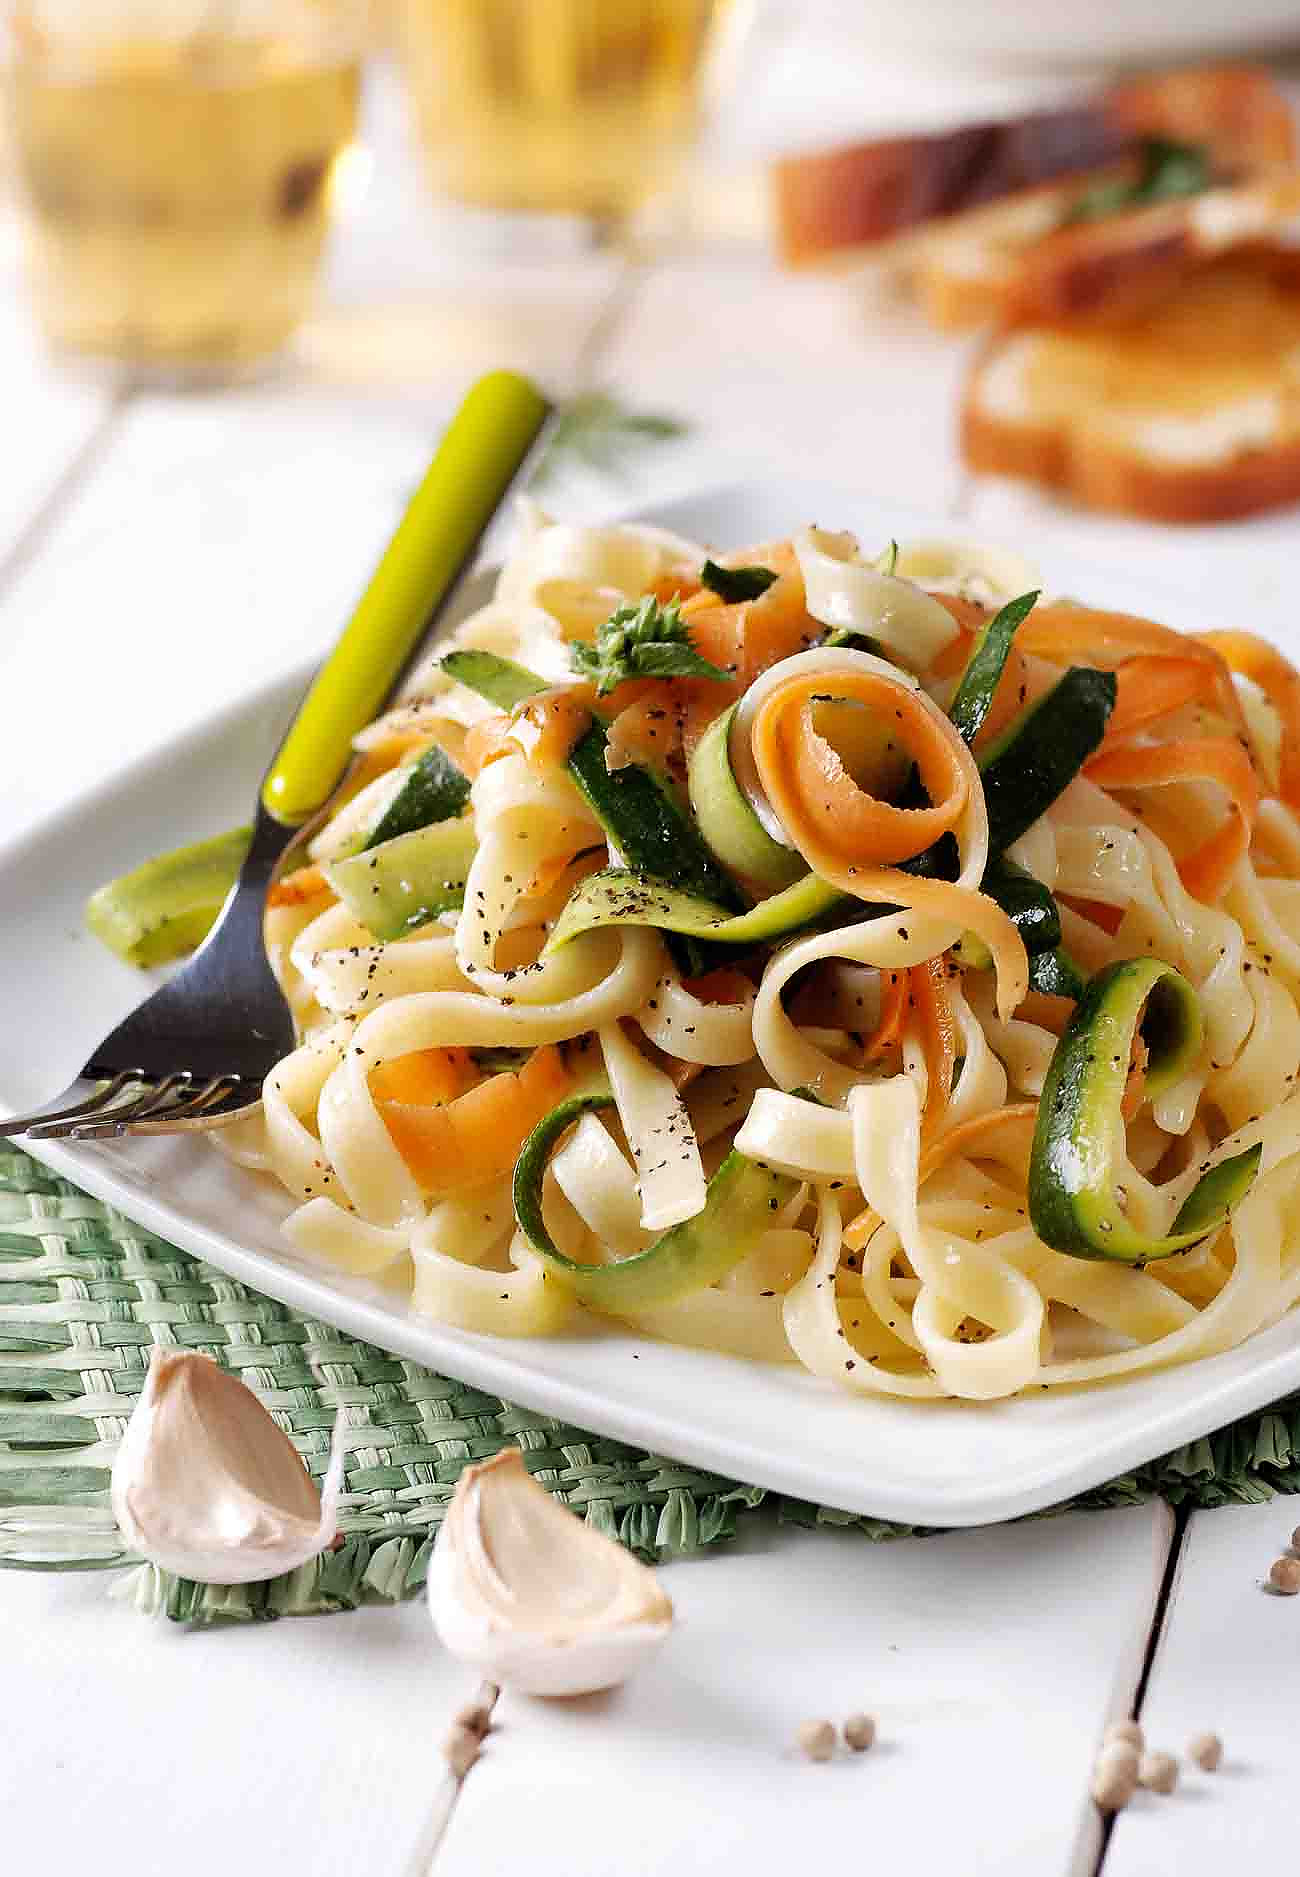 Spring Vegetables Tagliatelle Pasta in Mustard Lemon Basil Sauce